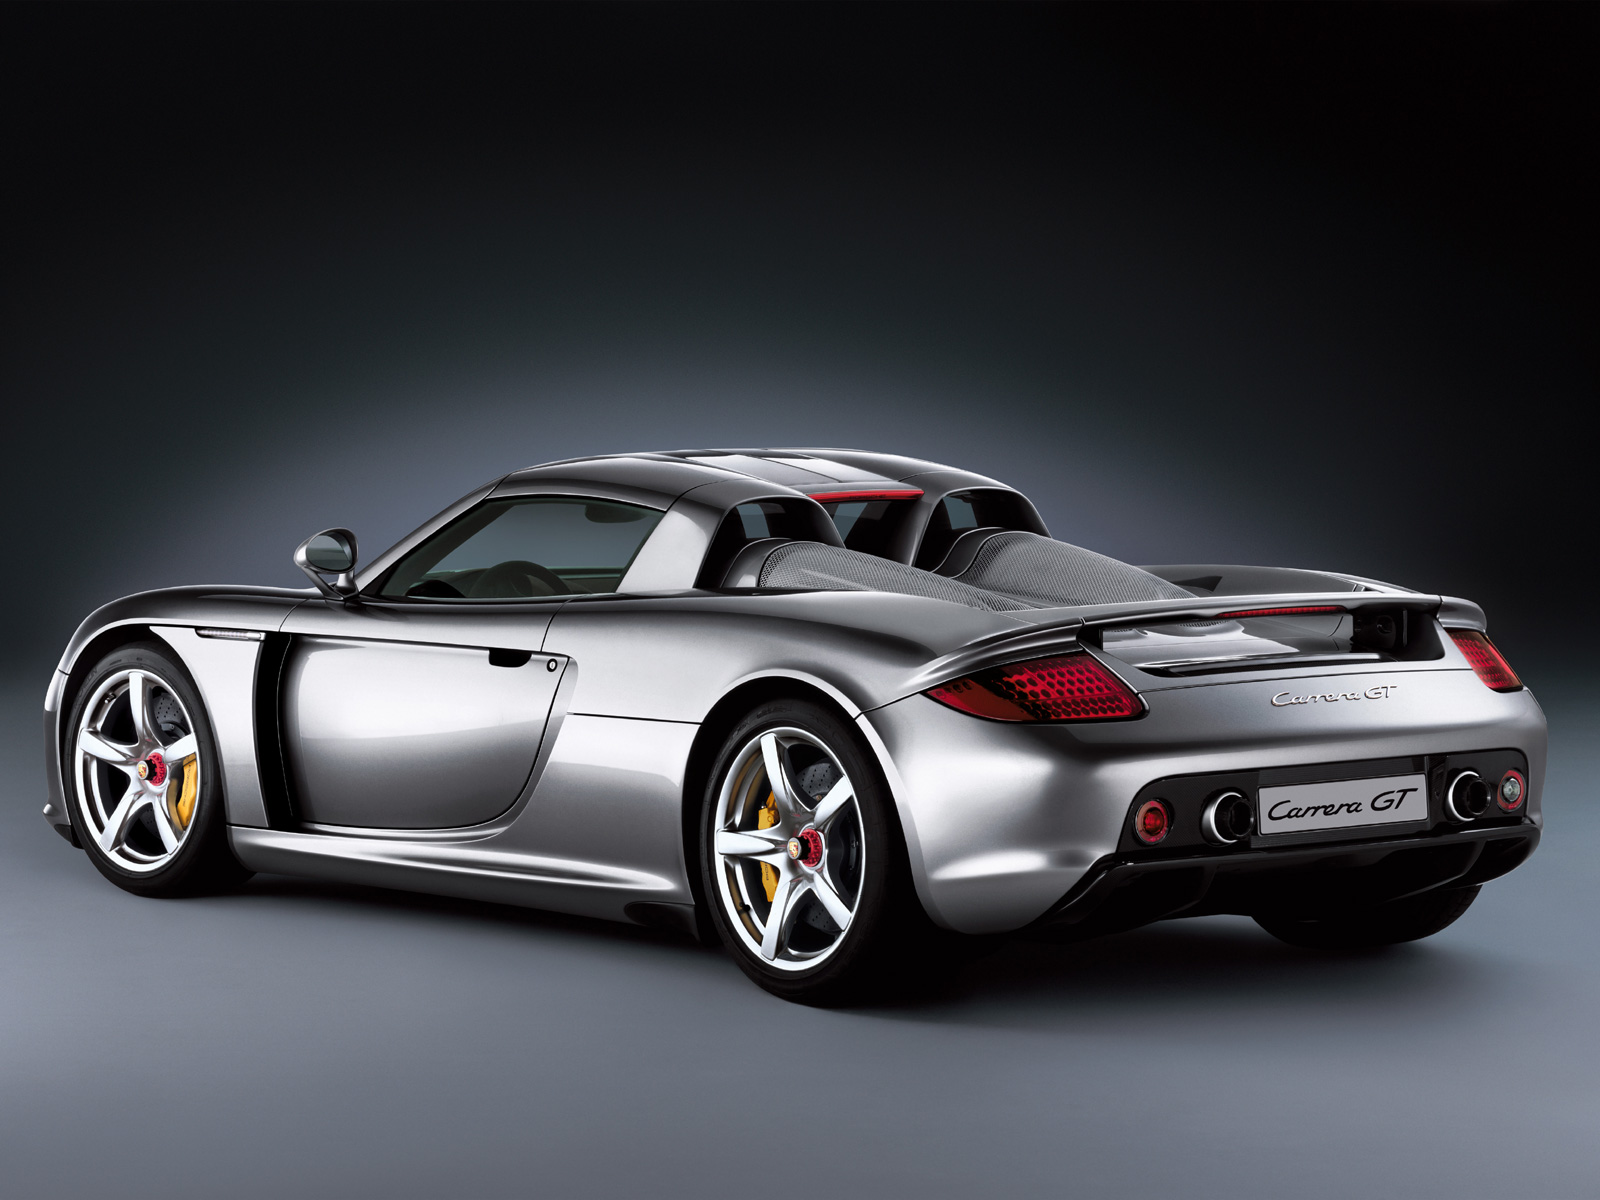 porsche carrera gt picture 8513 porsche photo gallery. Black Bedroom Furniture Sets. Home Design Ideas